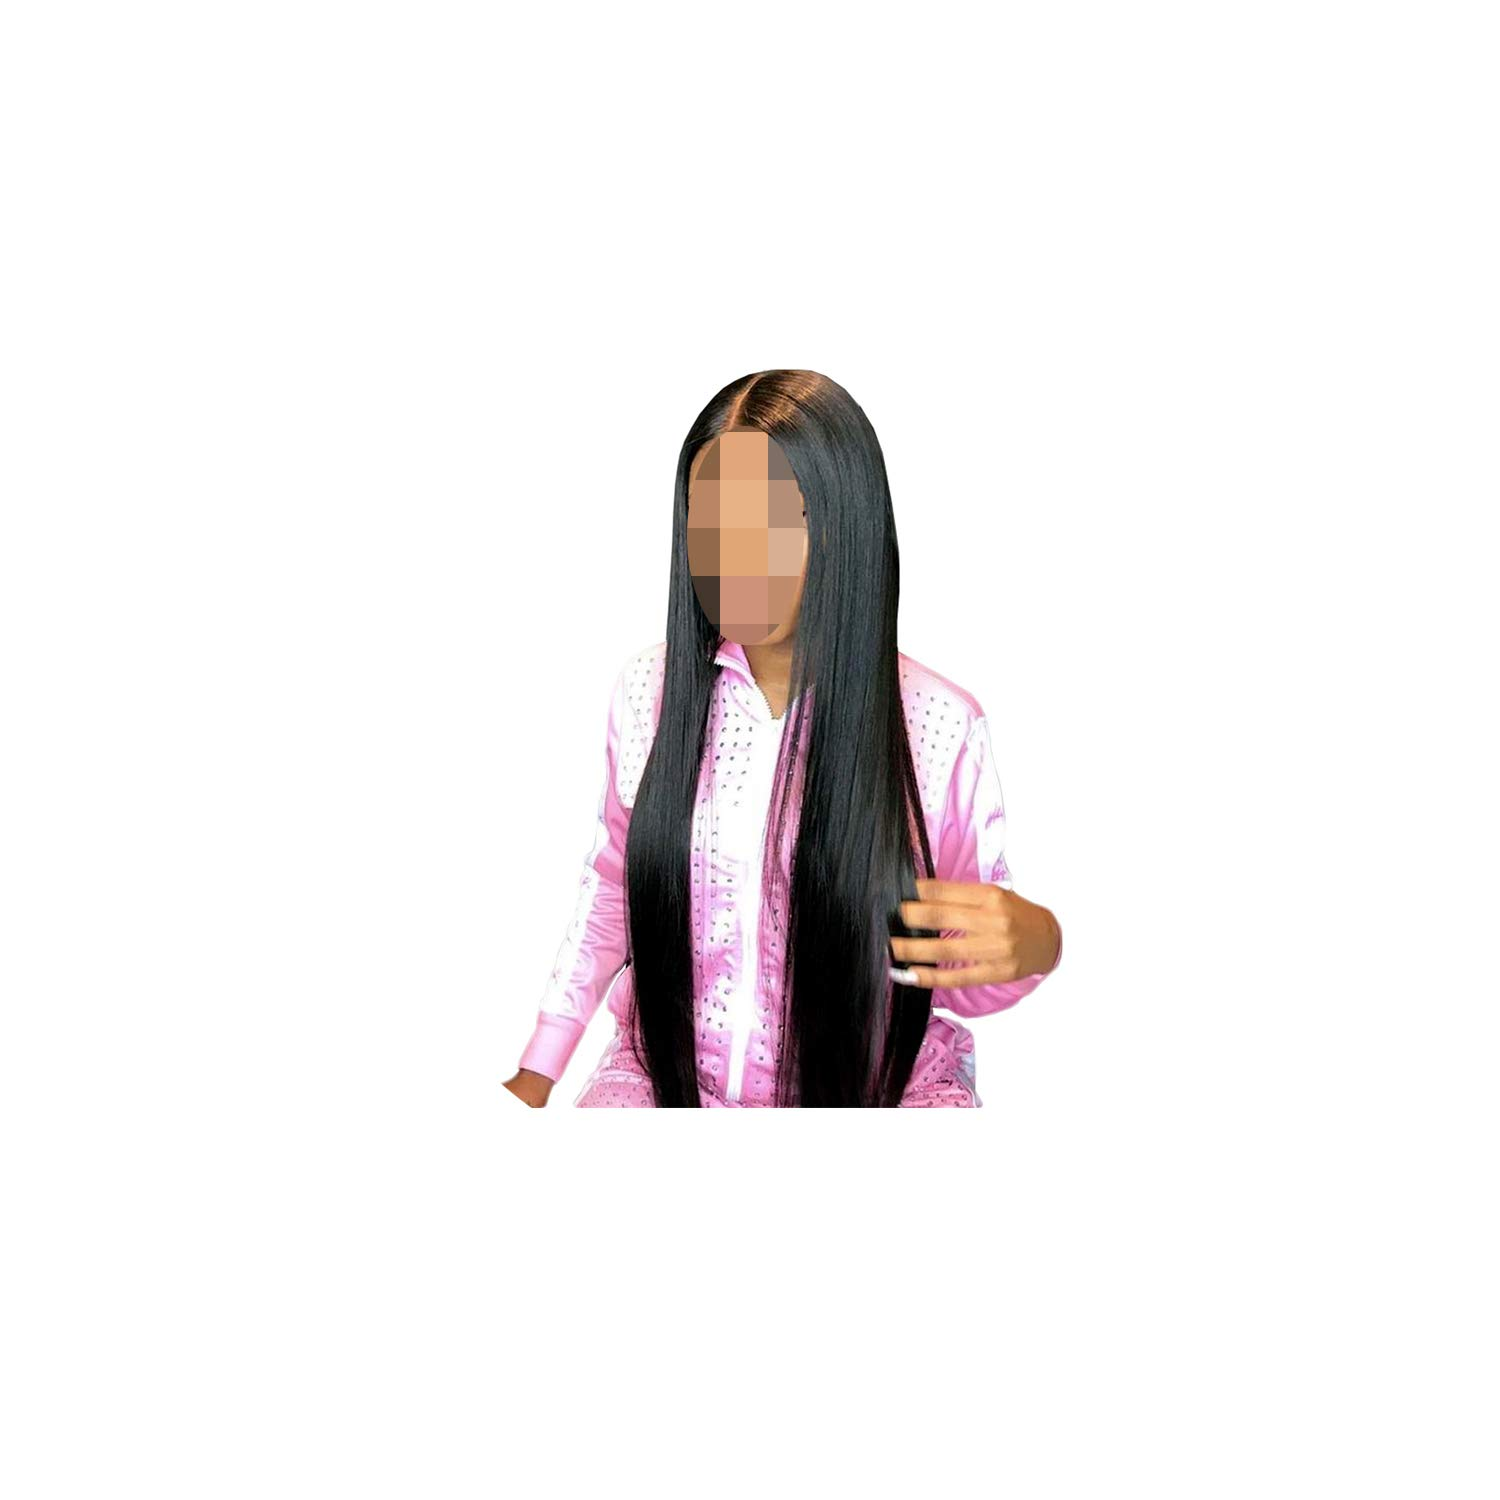 13x6 Lace Front Wig Remy Glueless Lace Front Human Hair Wigs Pre Plucked Brazilian Straight Lace Wig With Baby Hair,Natural Color,18inches,150 Density 13x6 Wig